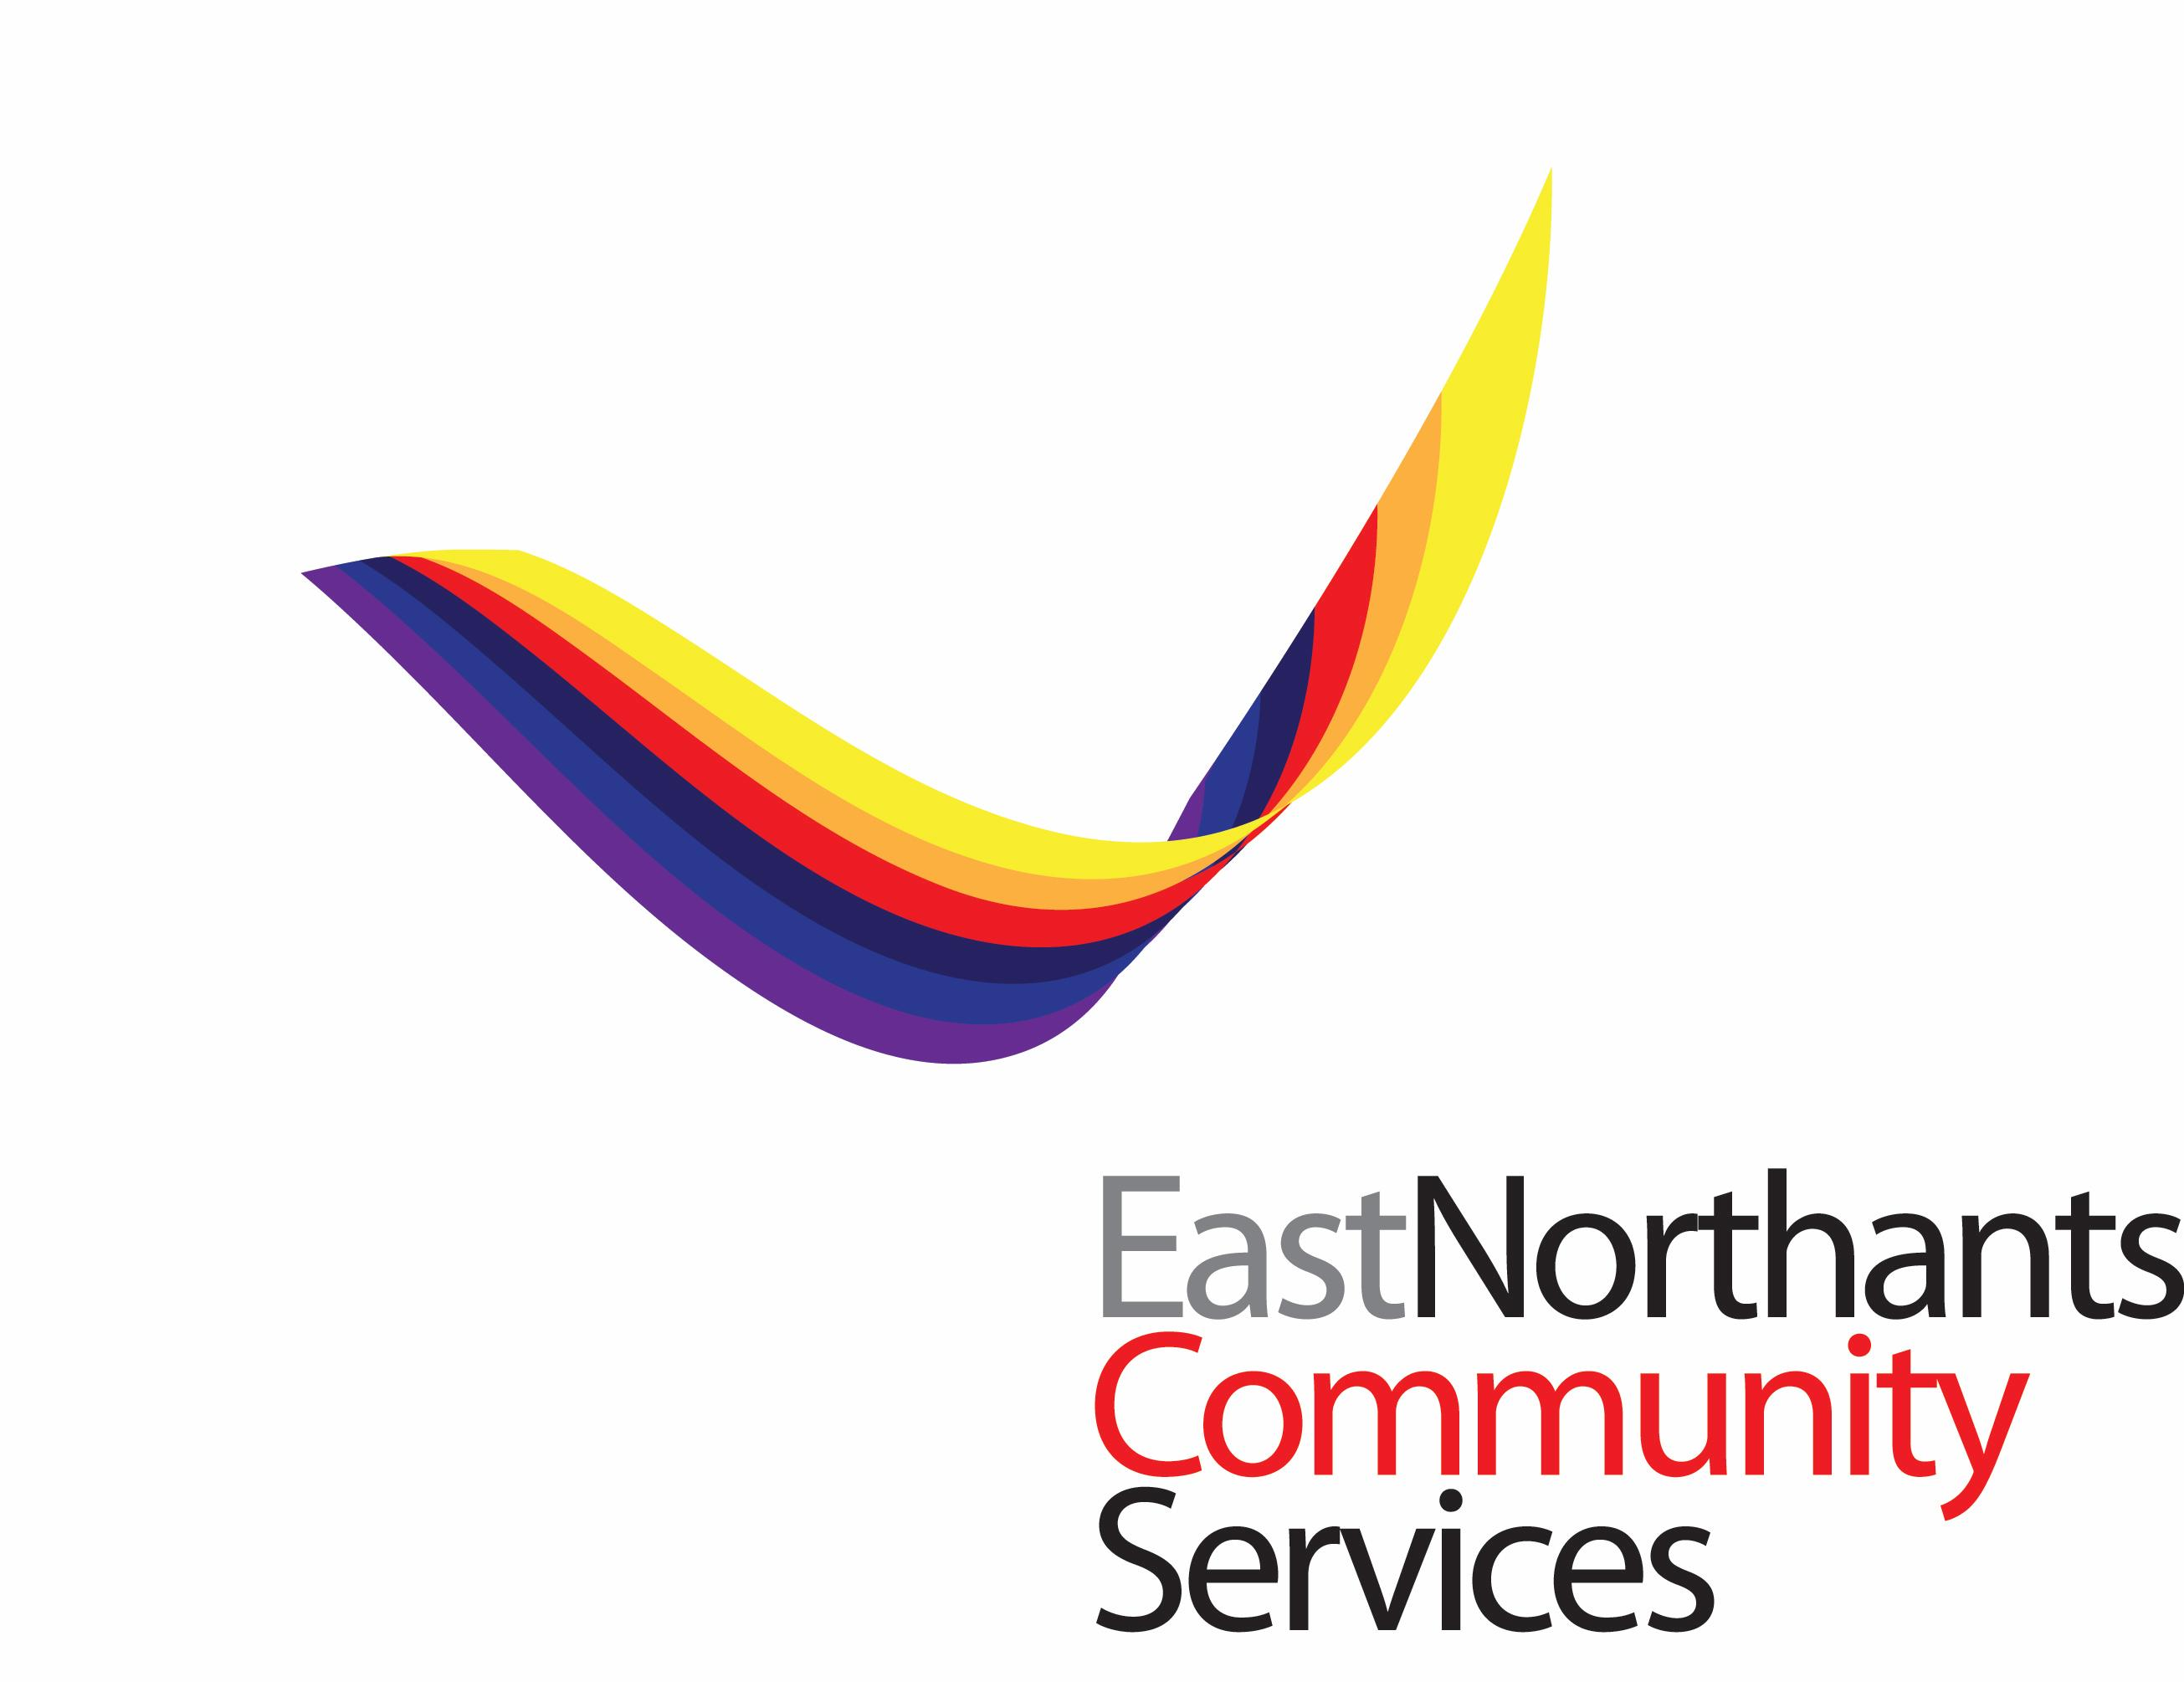 East Northants Community Services